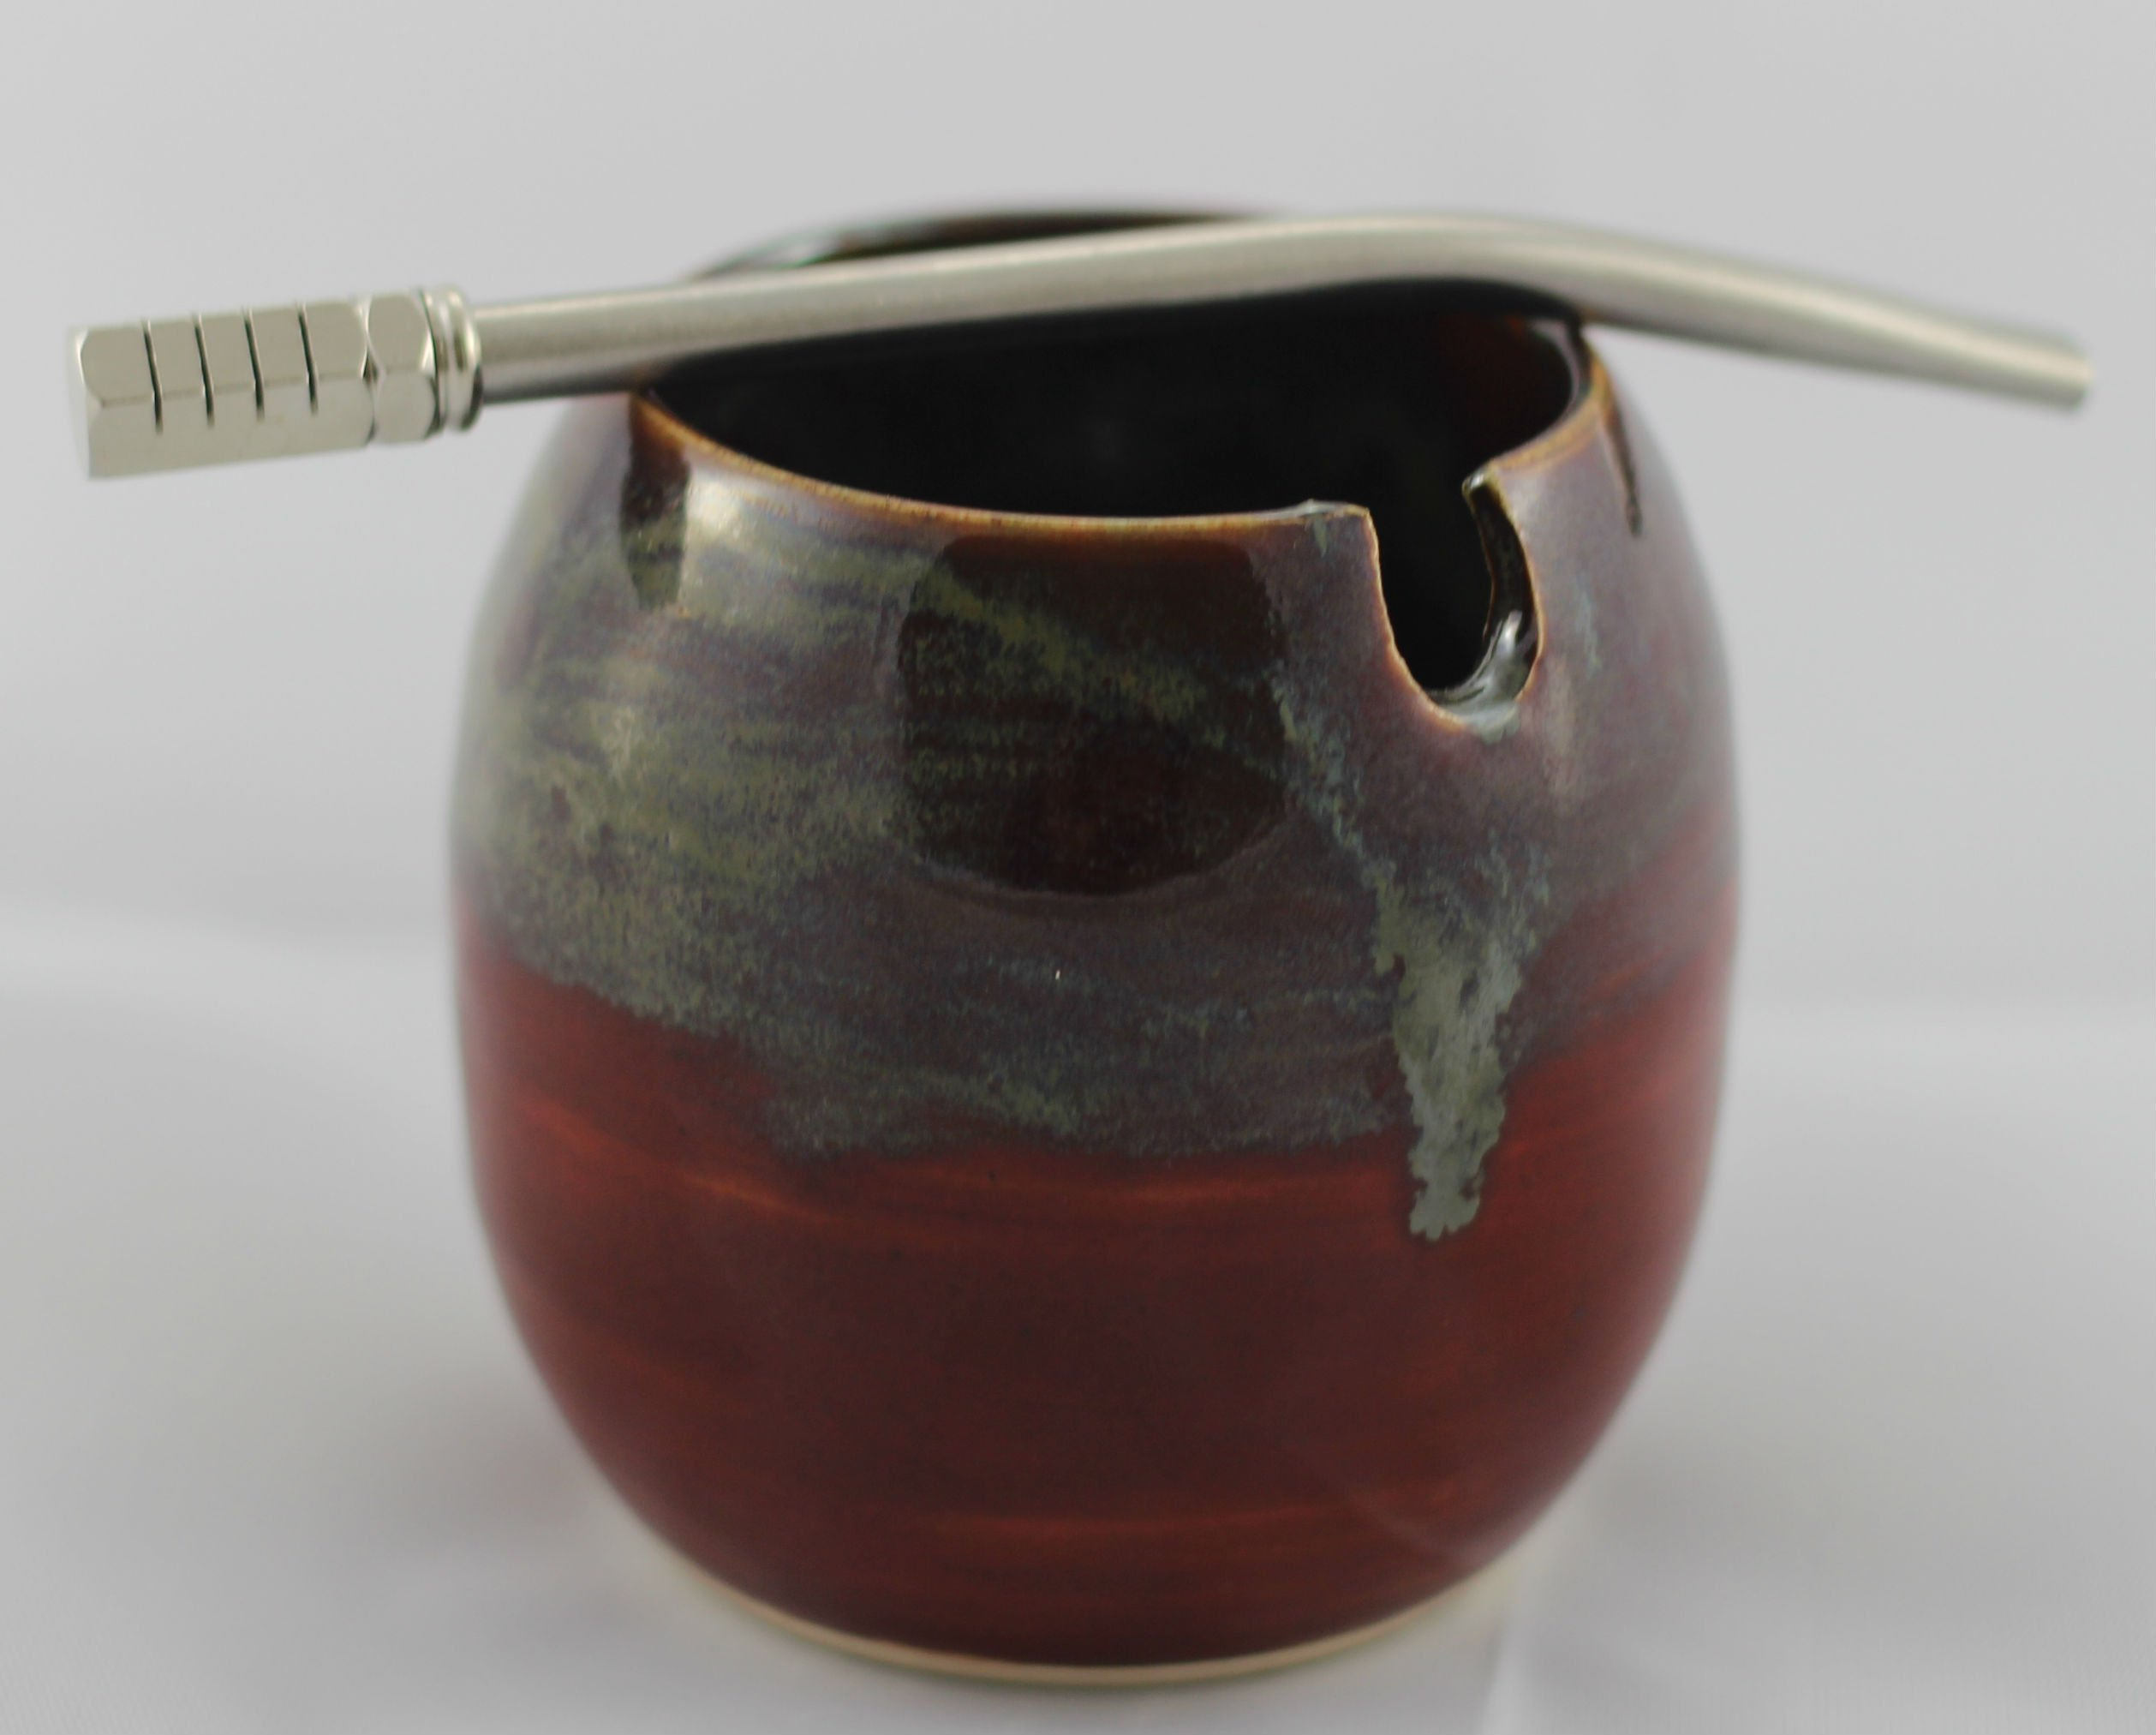 """Ceramic Mate Gourd with Side Hole for Mate Straw aka Yerba Mate Cup Red Mixed Swirl with 5.5"""" Bombilla (Metal Yerba Mate Straw)"""